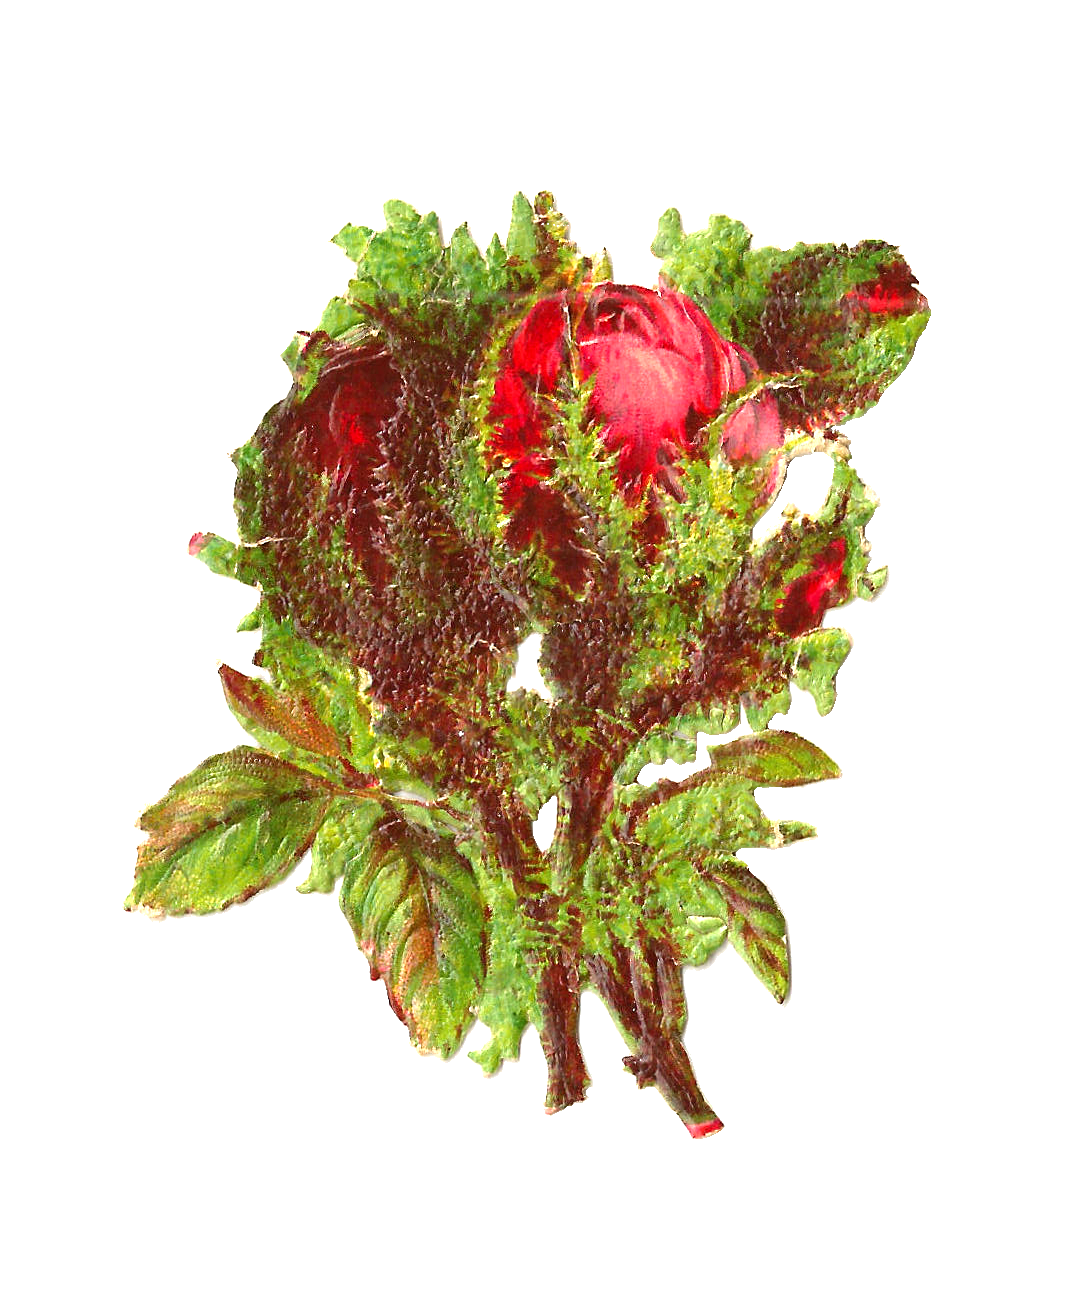 Moss Rose clipart #19, Download drawings